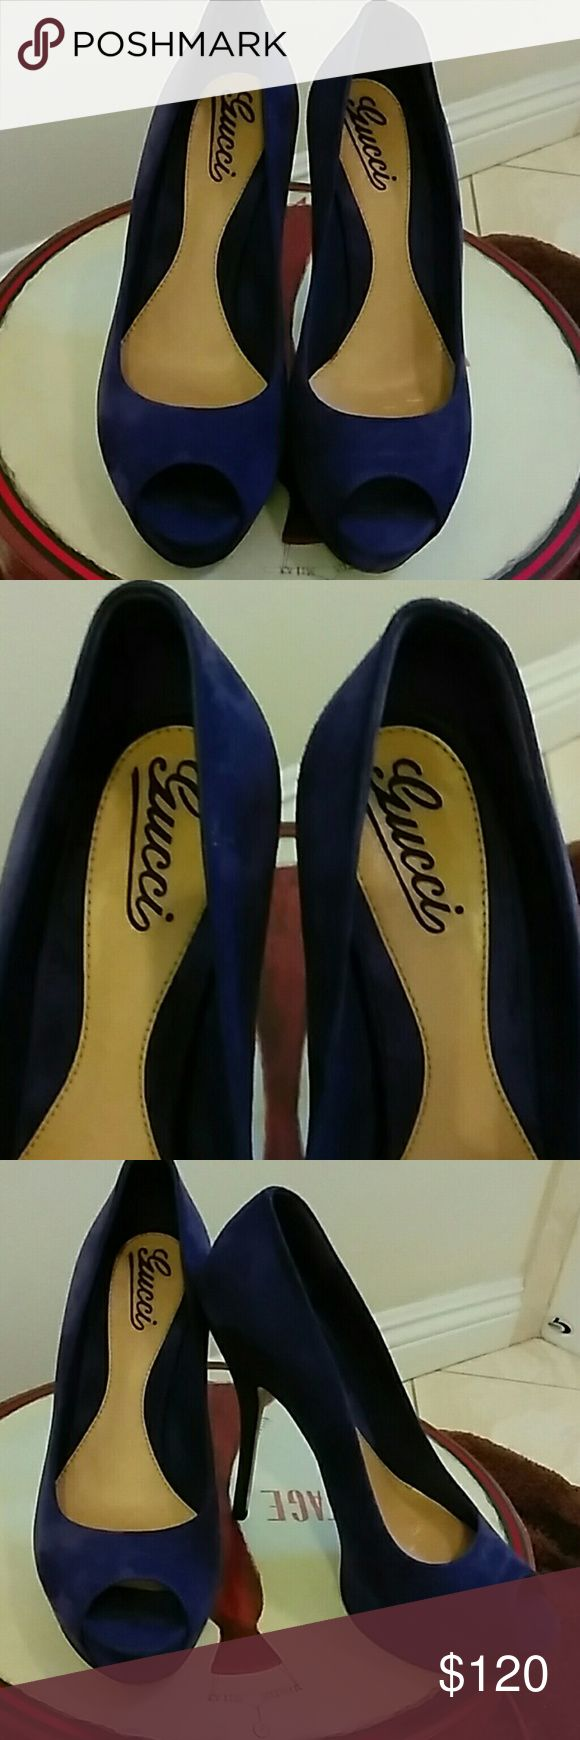 """GUCCI SUEDE PURPLE PEEP TOE HEELS VTG SIZE 8 GOOD USED CONDITION PURPLE SIZE 8 ITALY  HEELS 5"""" INSIDE BACK HEEL A LITTLE STICKY I TOOK OUT SHOE CARD VERY MINOR SOLES GOOD AND OUTSIDE GOOD NO STAINS OR SCRAPES EXCELLENT VINTAGE HEELS GREAT PRICE. Gucci Shoes Heels"""